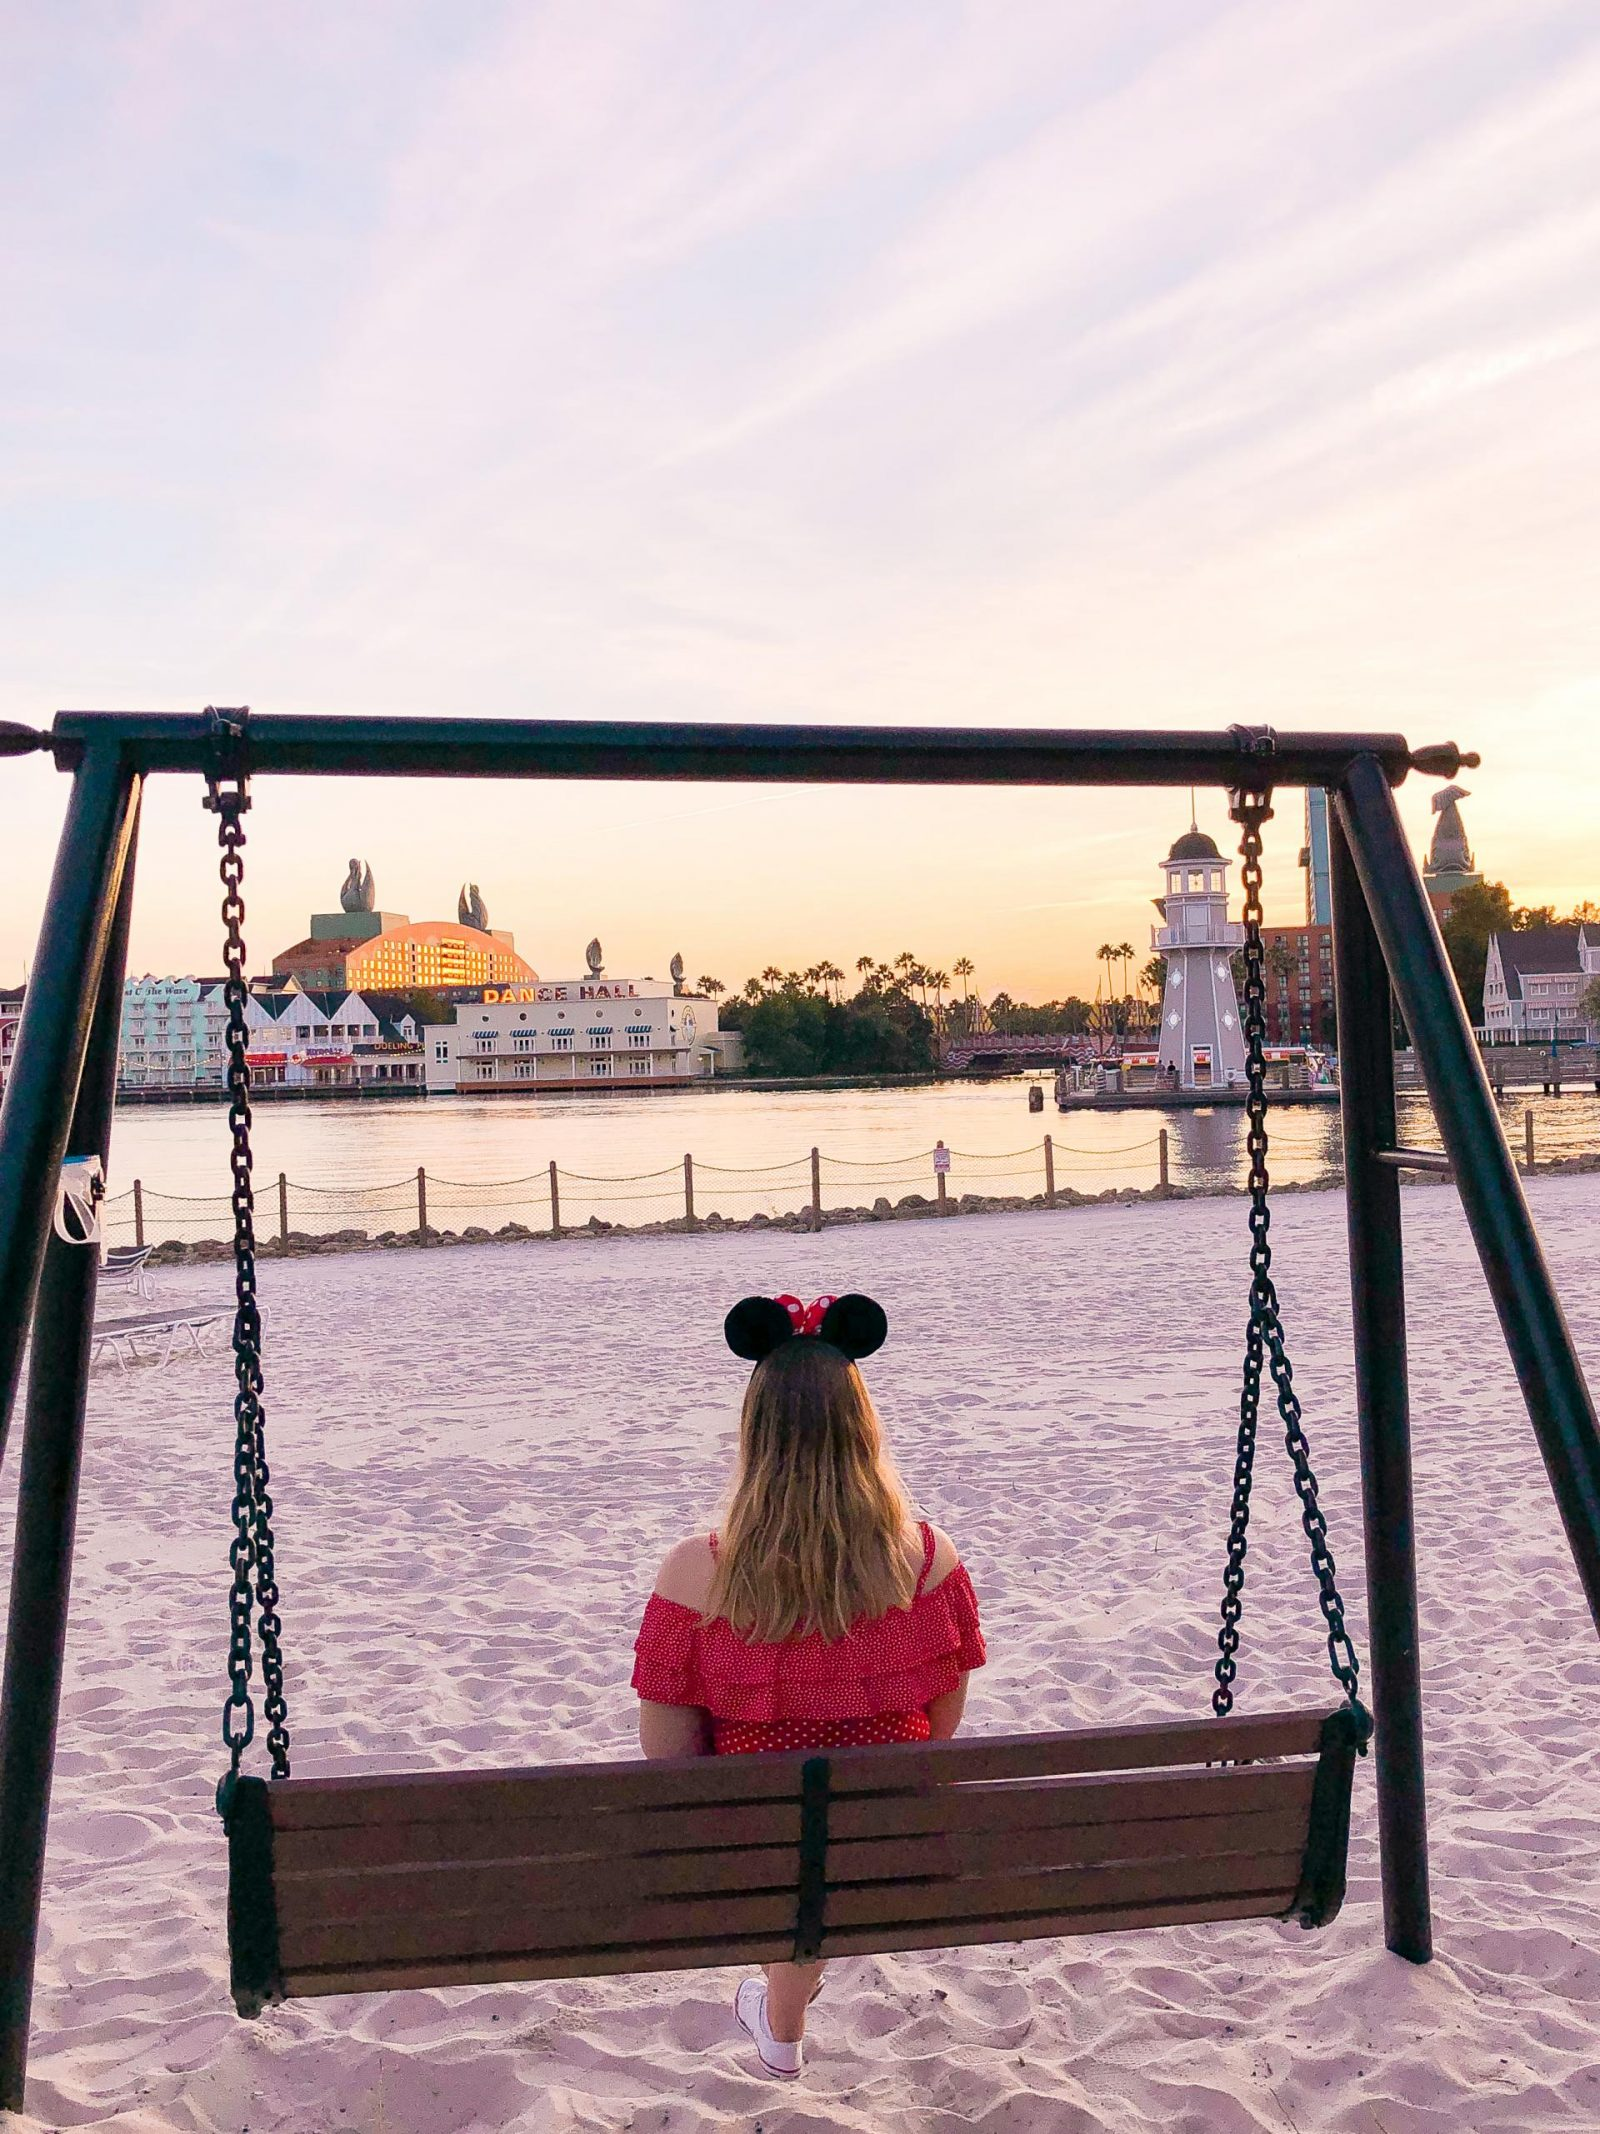 The beach overlooking the Boardwalk at Disney's Beach Club Resort